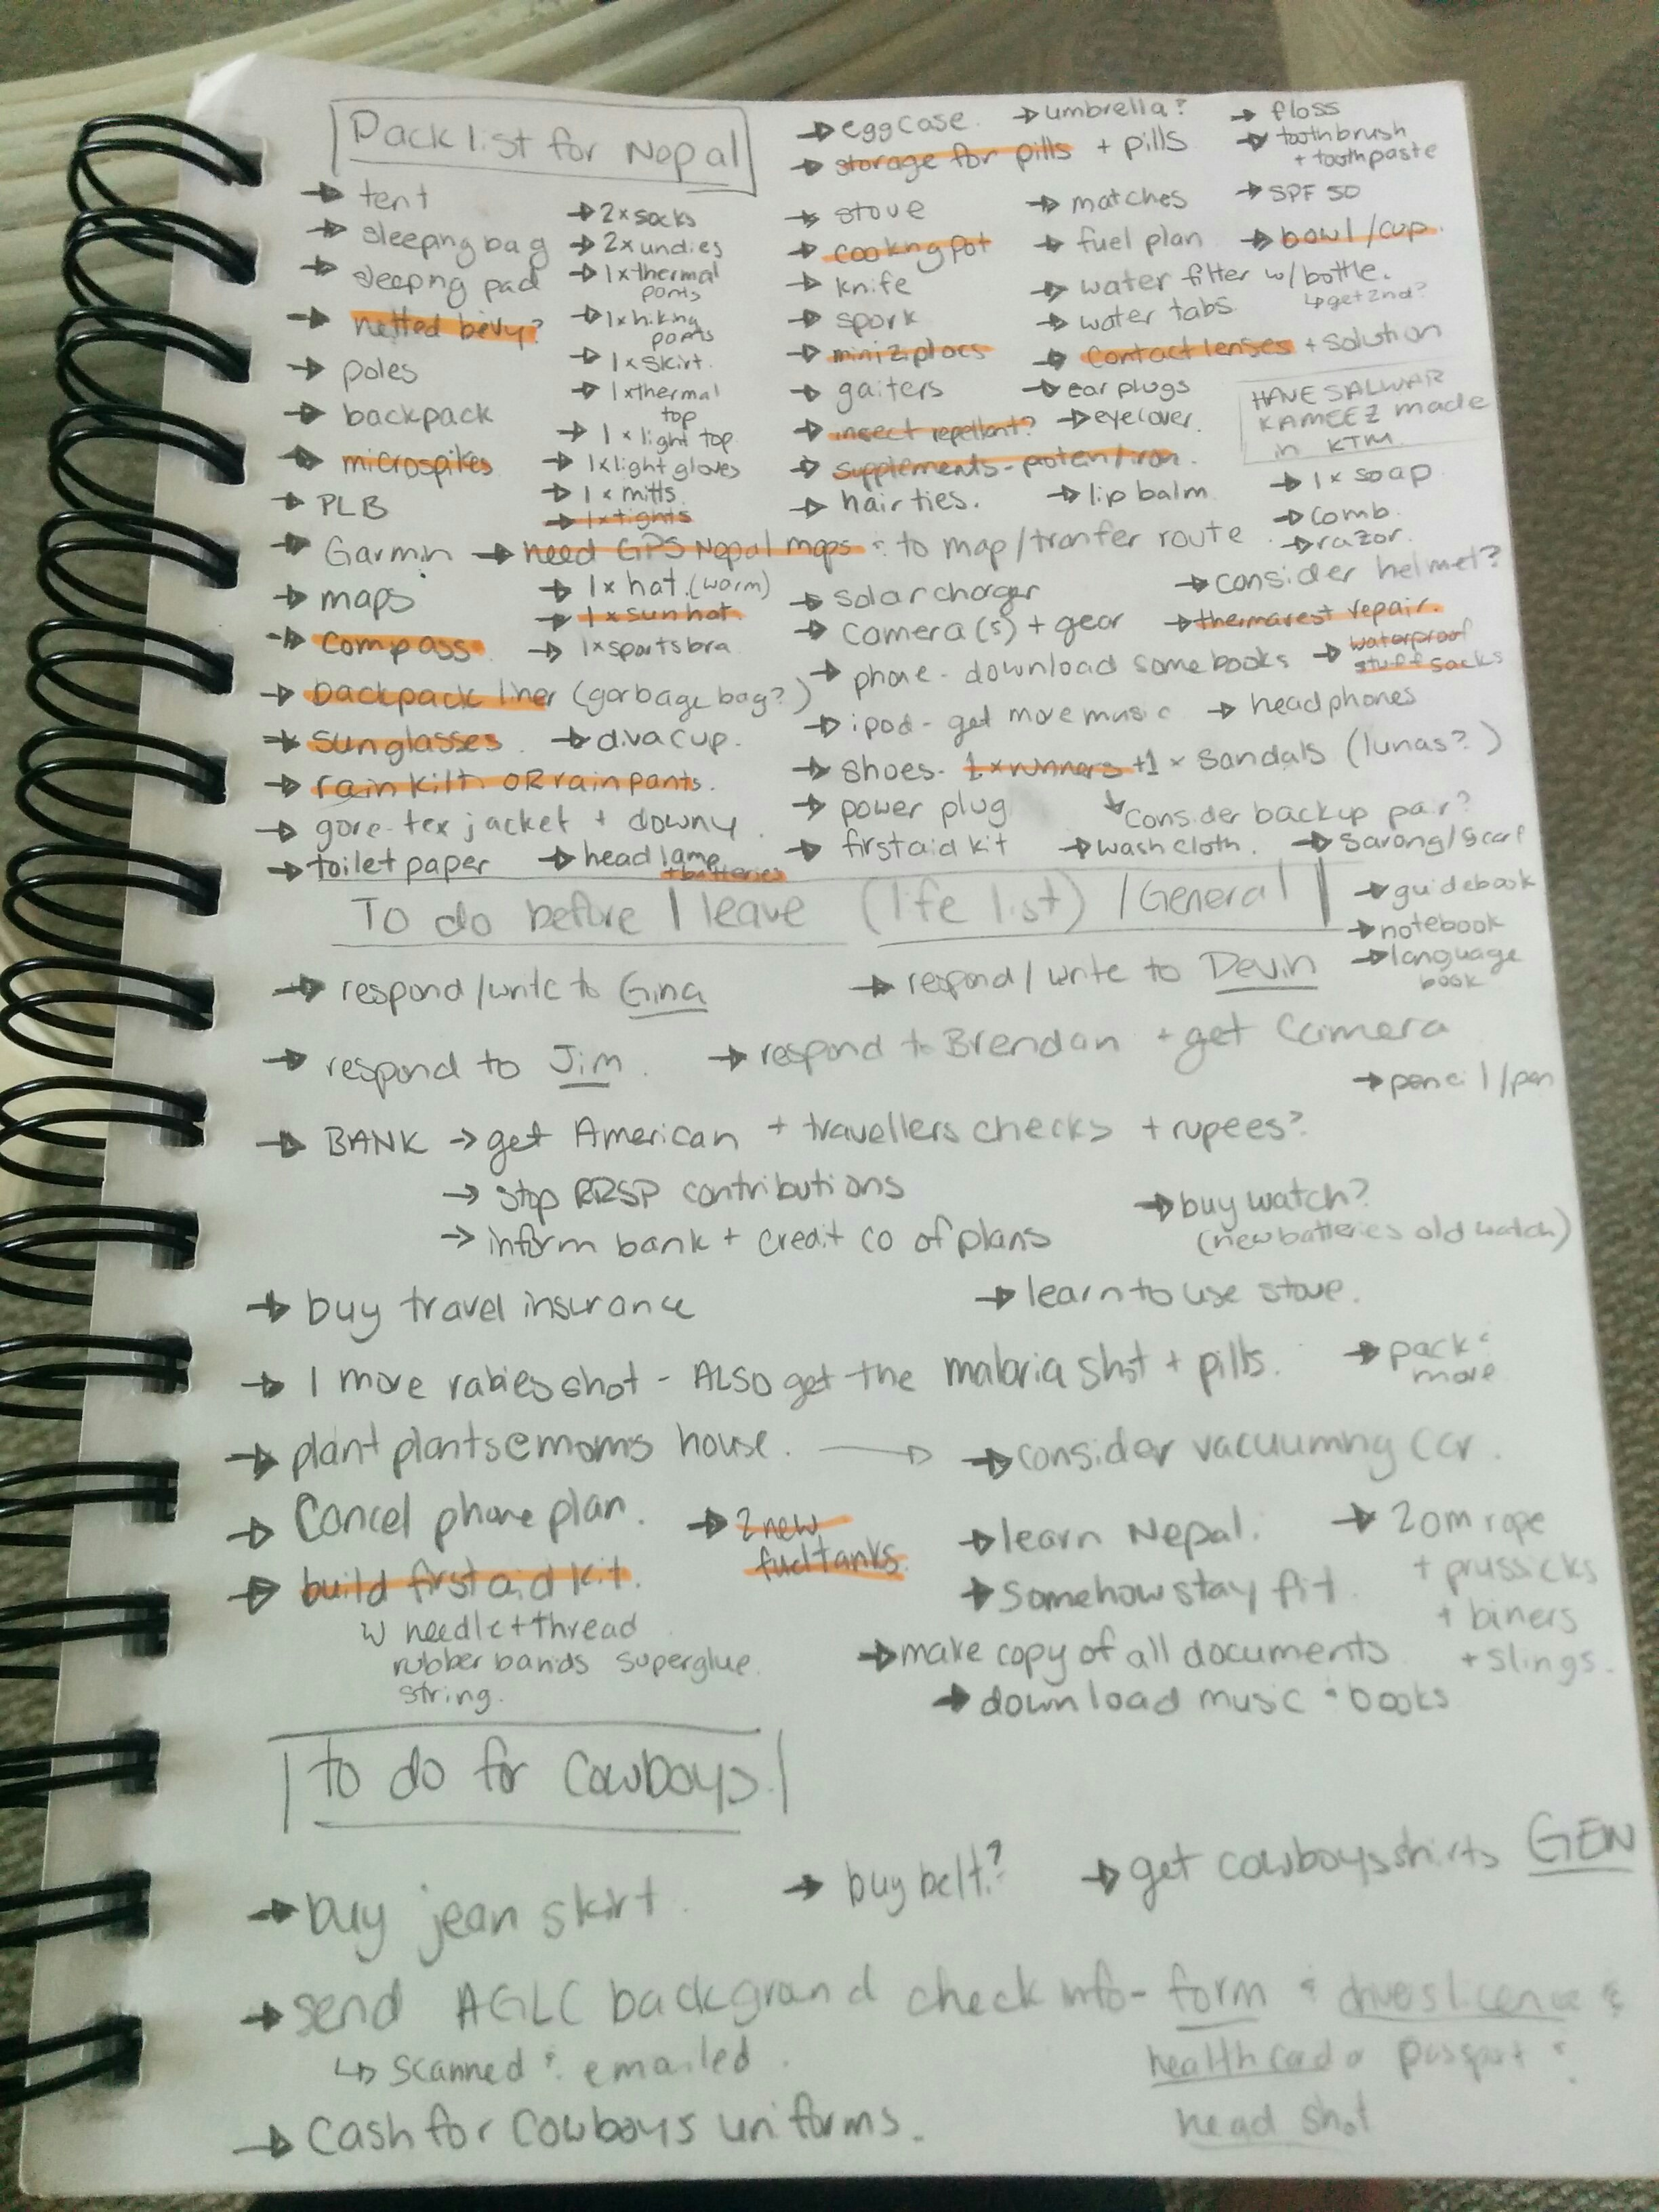 Chew on this for a bit! Haha. And this isn't even comprehensive - there are more things I have on other lists!